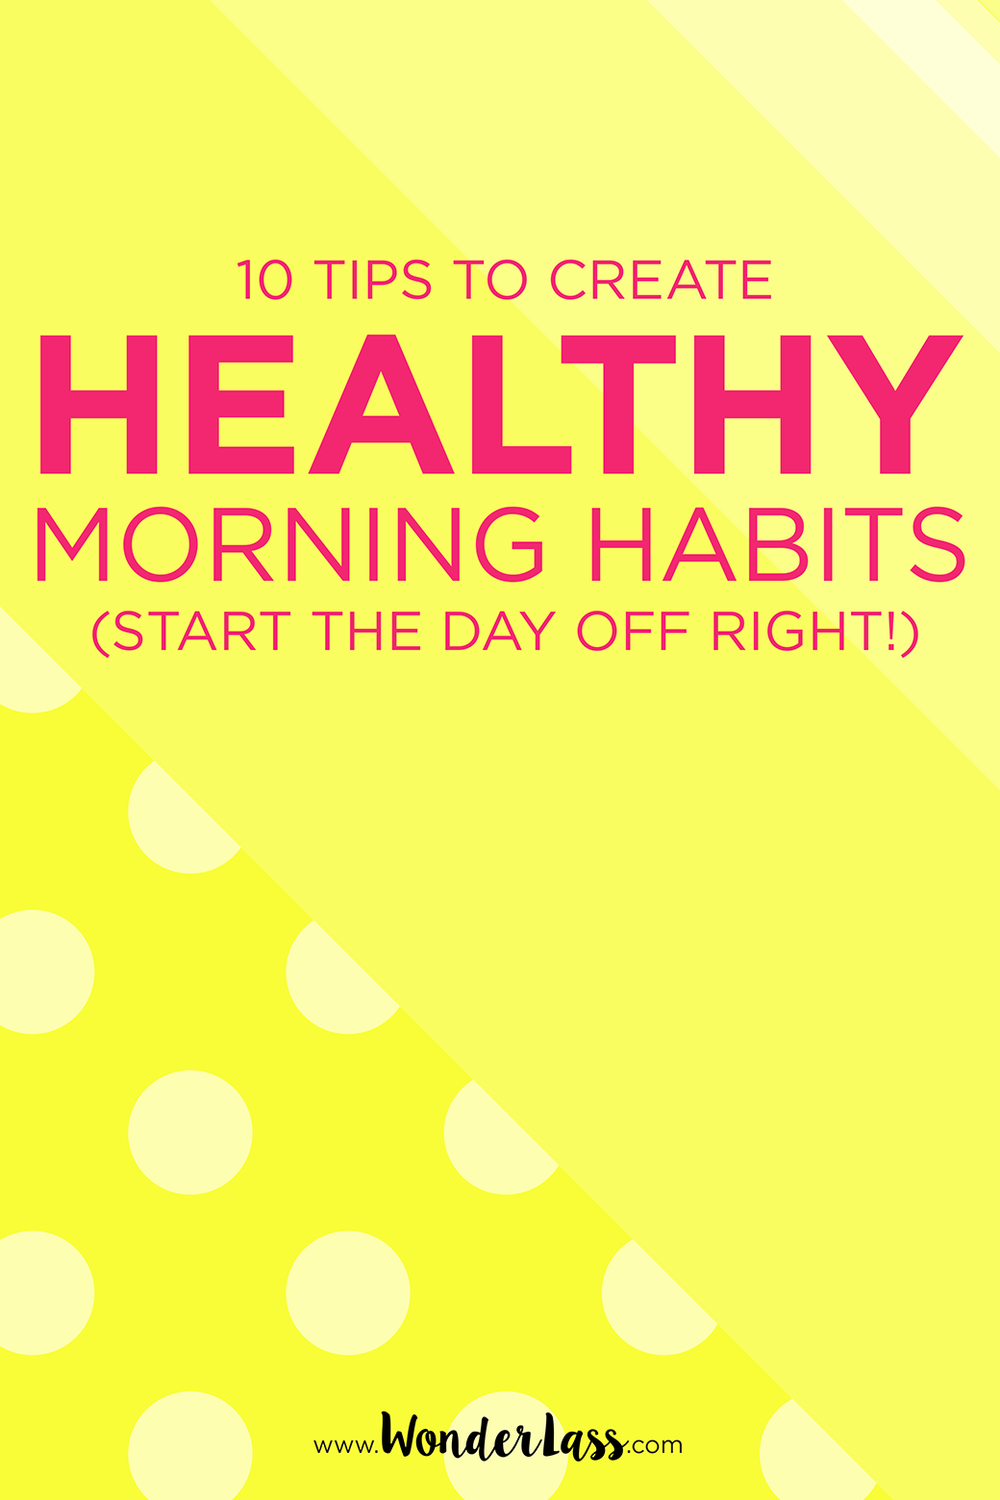 Start the day off right! Be more productive and feel better. Click through for 10 tips to create healthy morning habits!